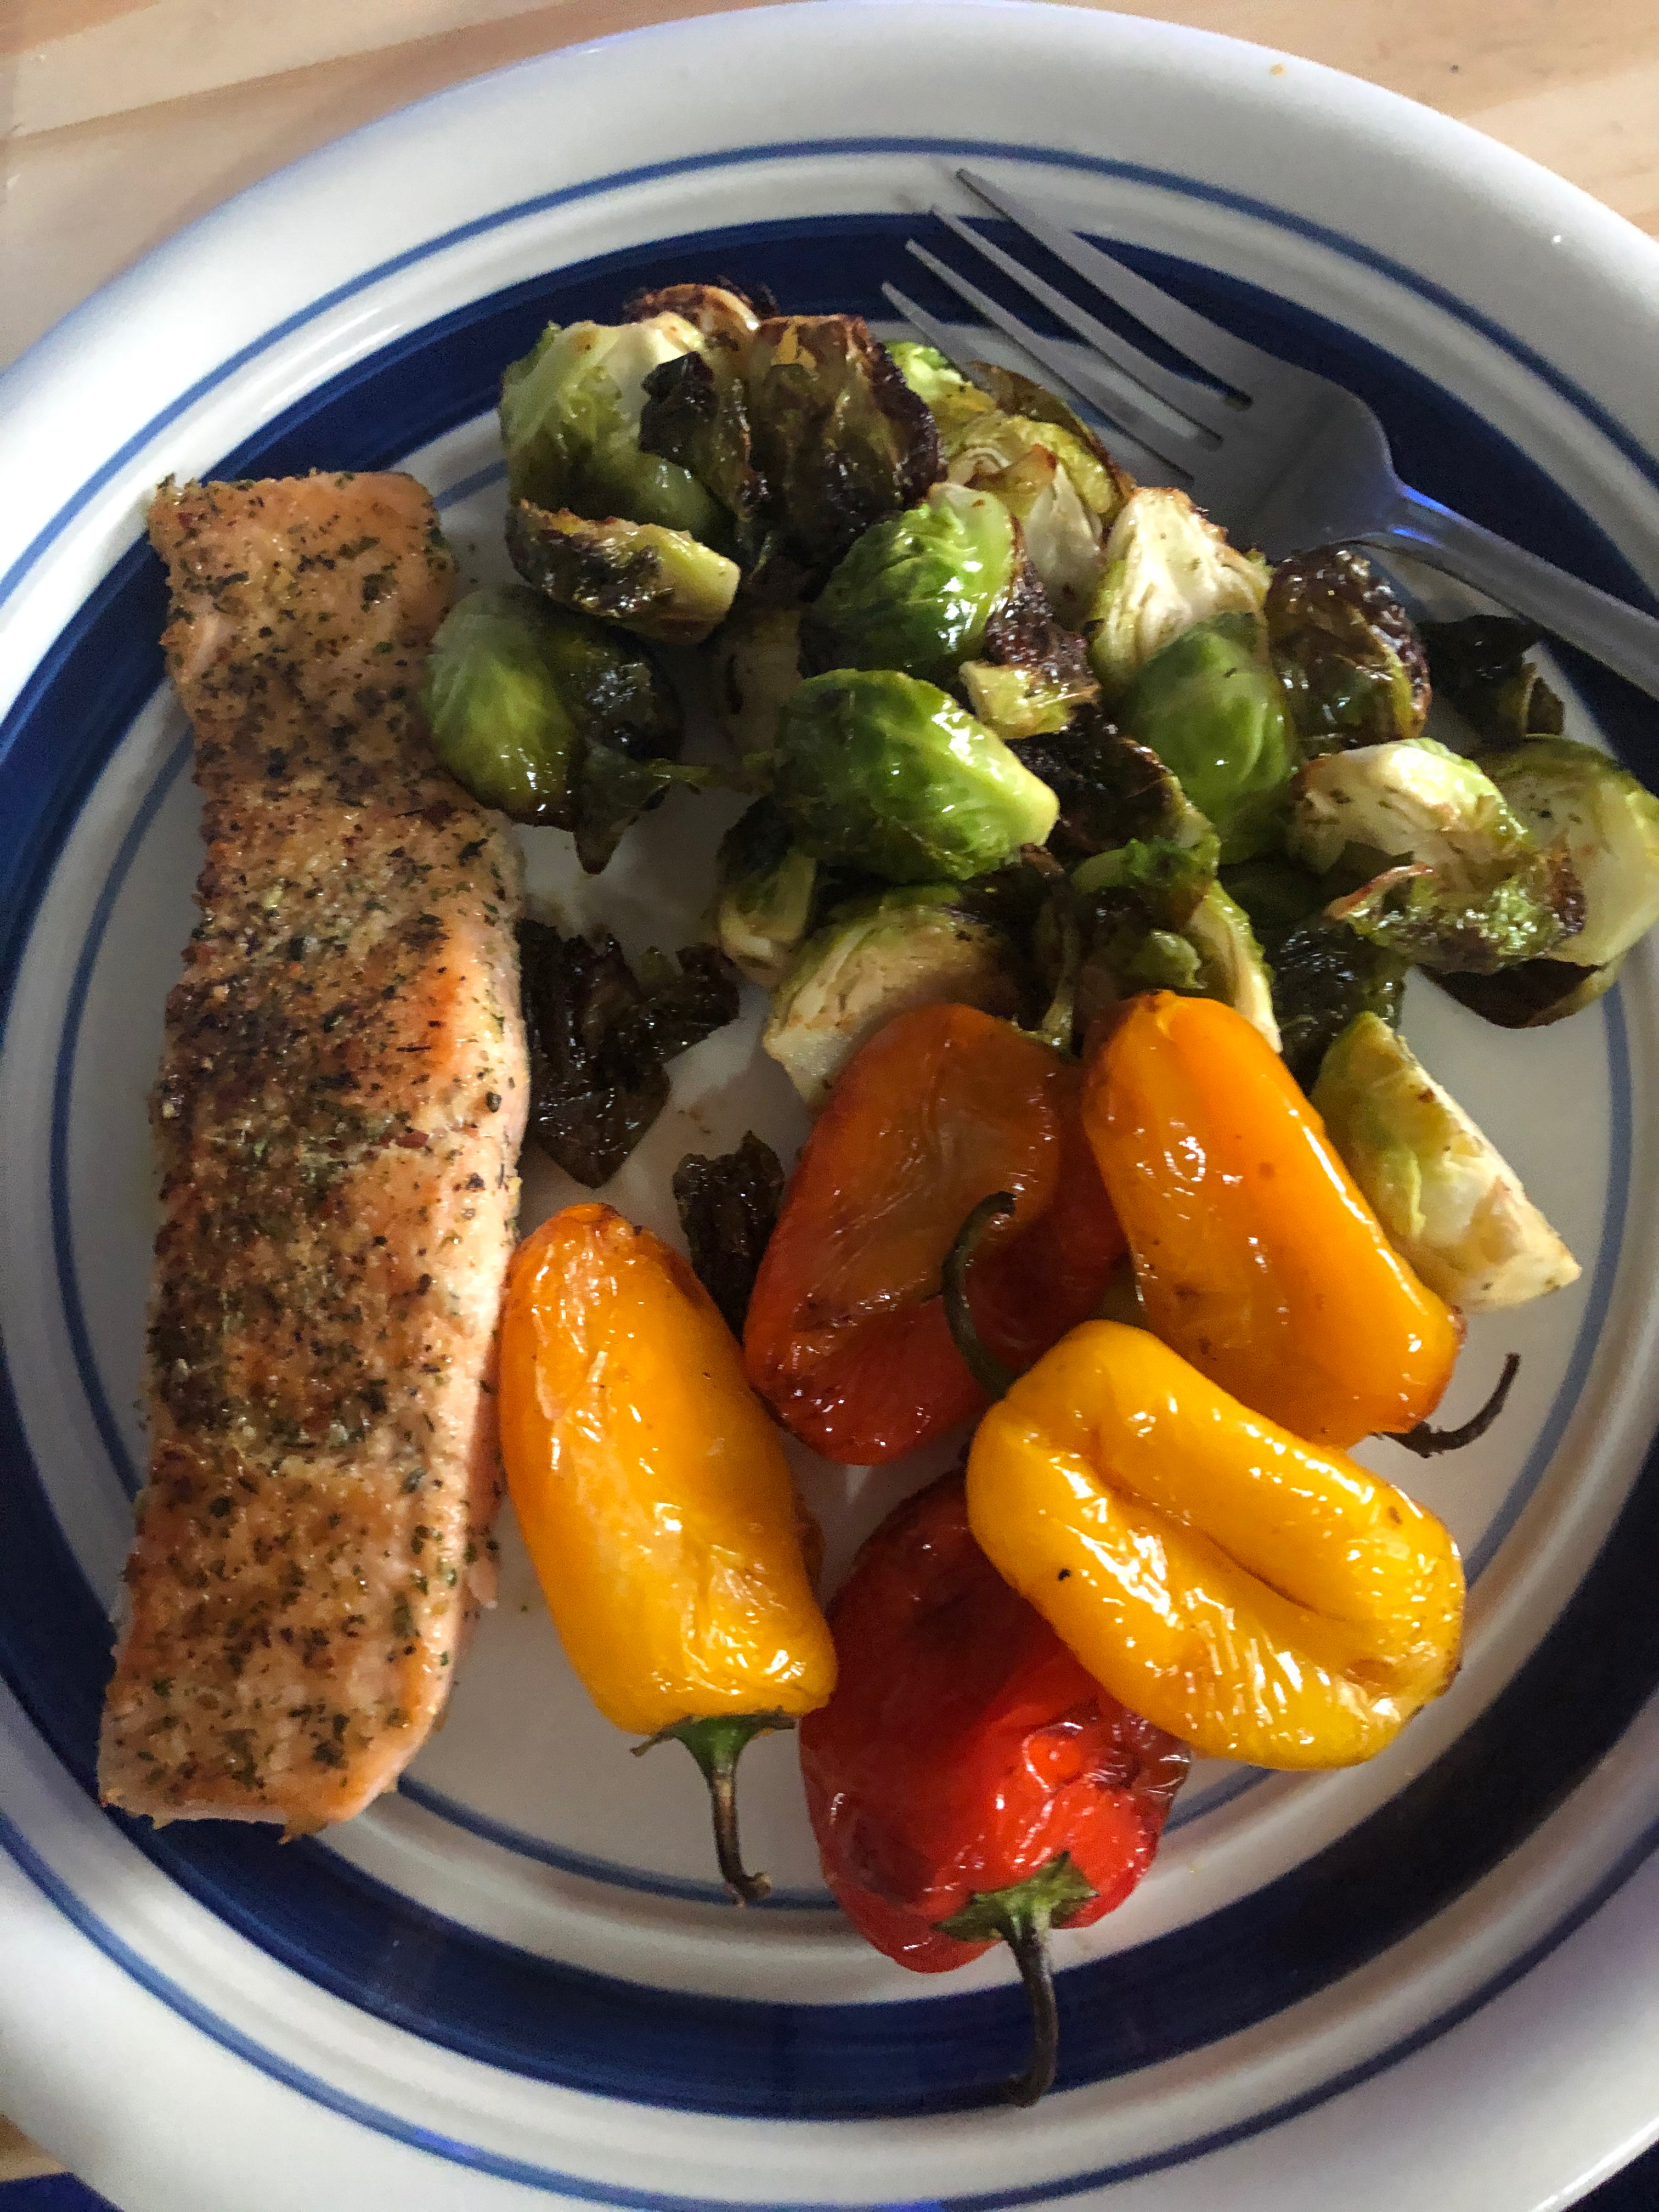 Salmon with brussel sprouts and peppers